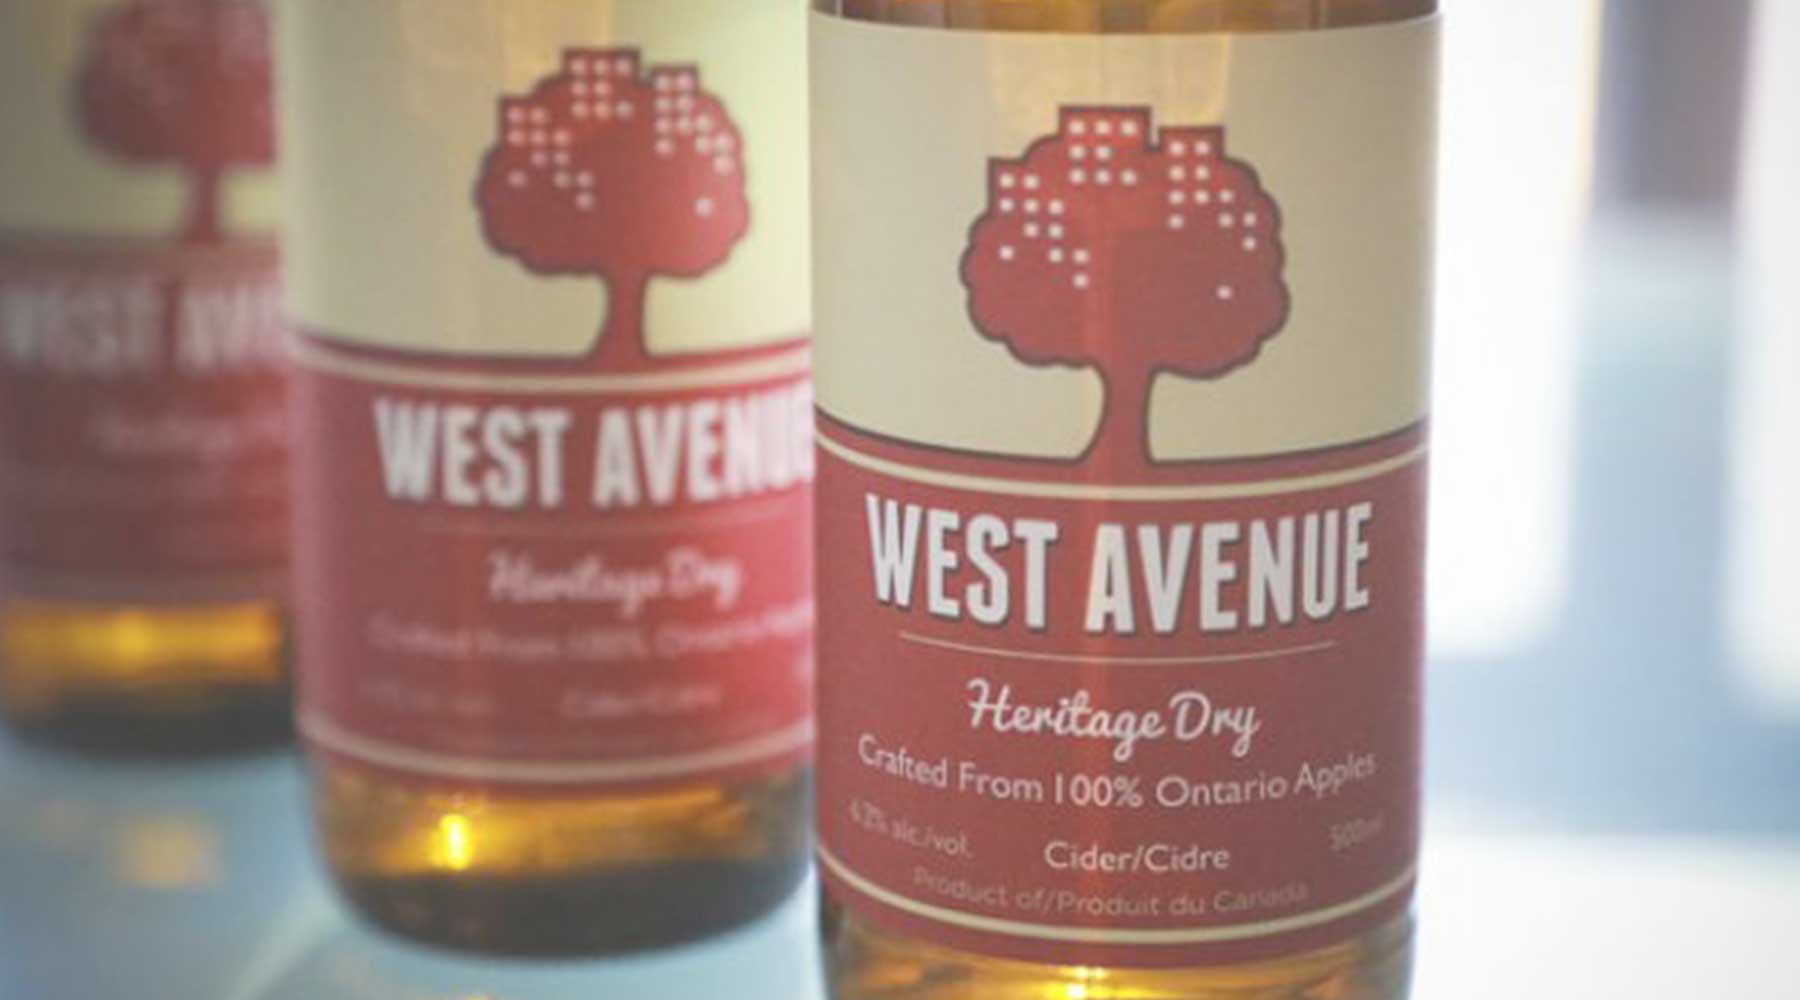 West Avenue Cider Company | Just Wine